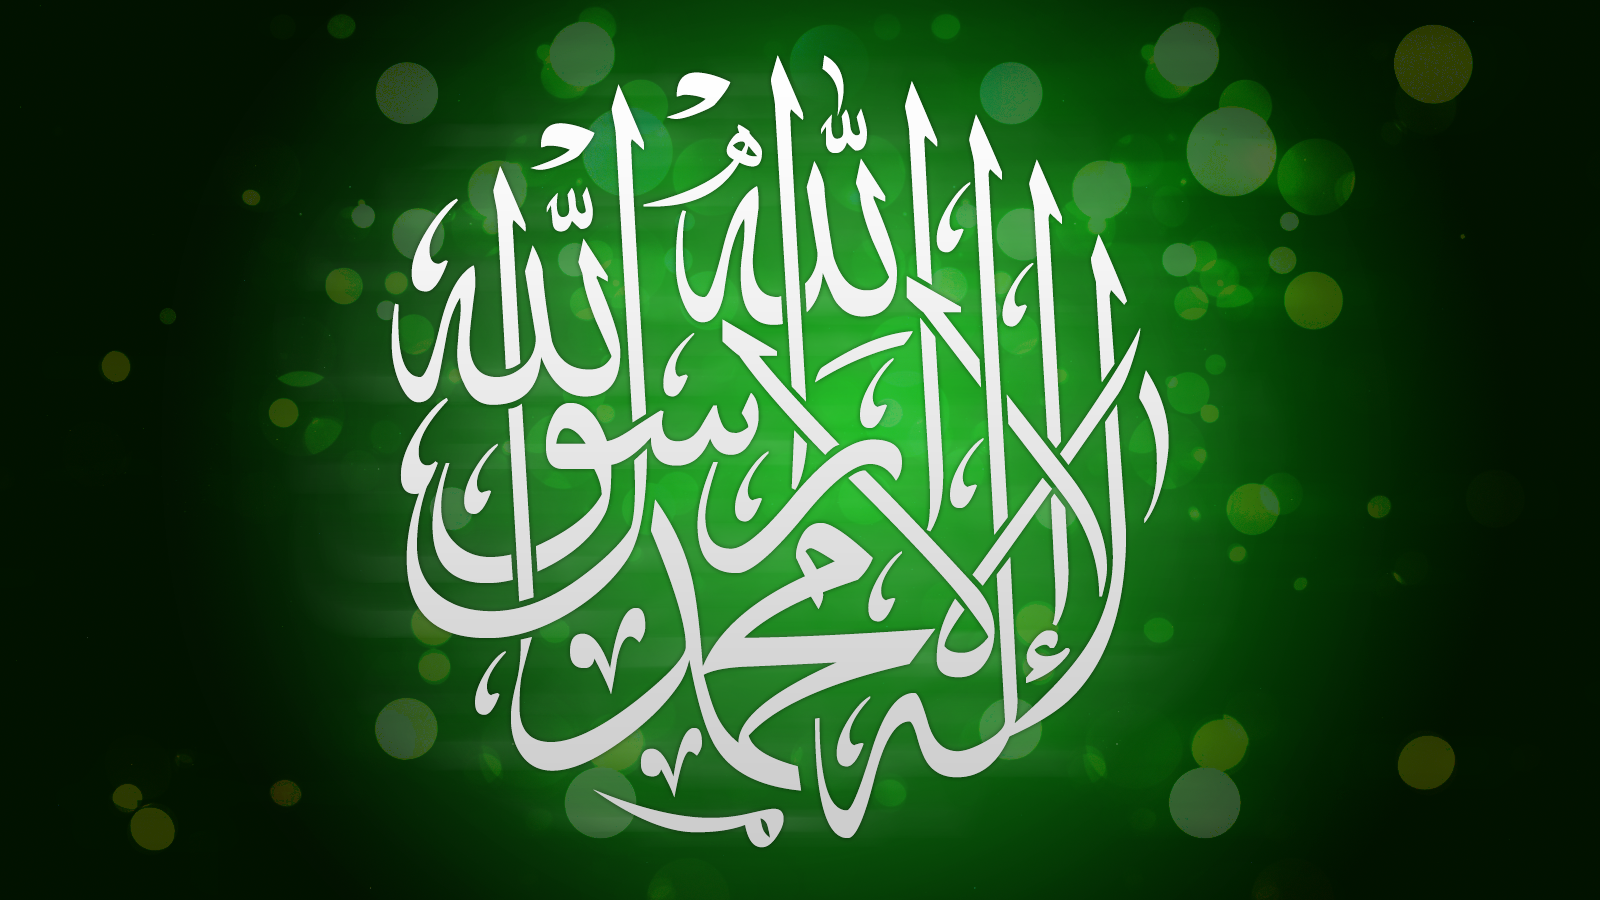 Islam and allah most high bing images allah and islam Allah calligraphy wallpaper